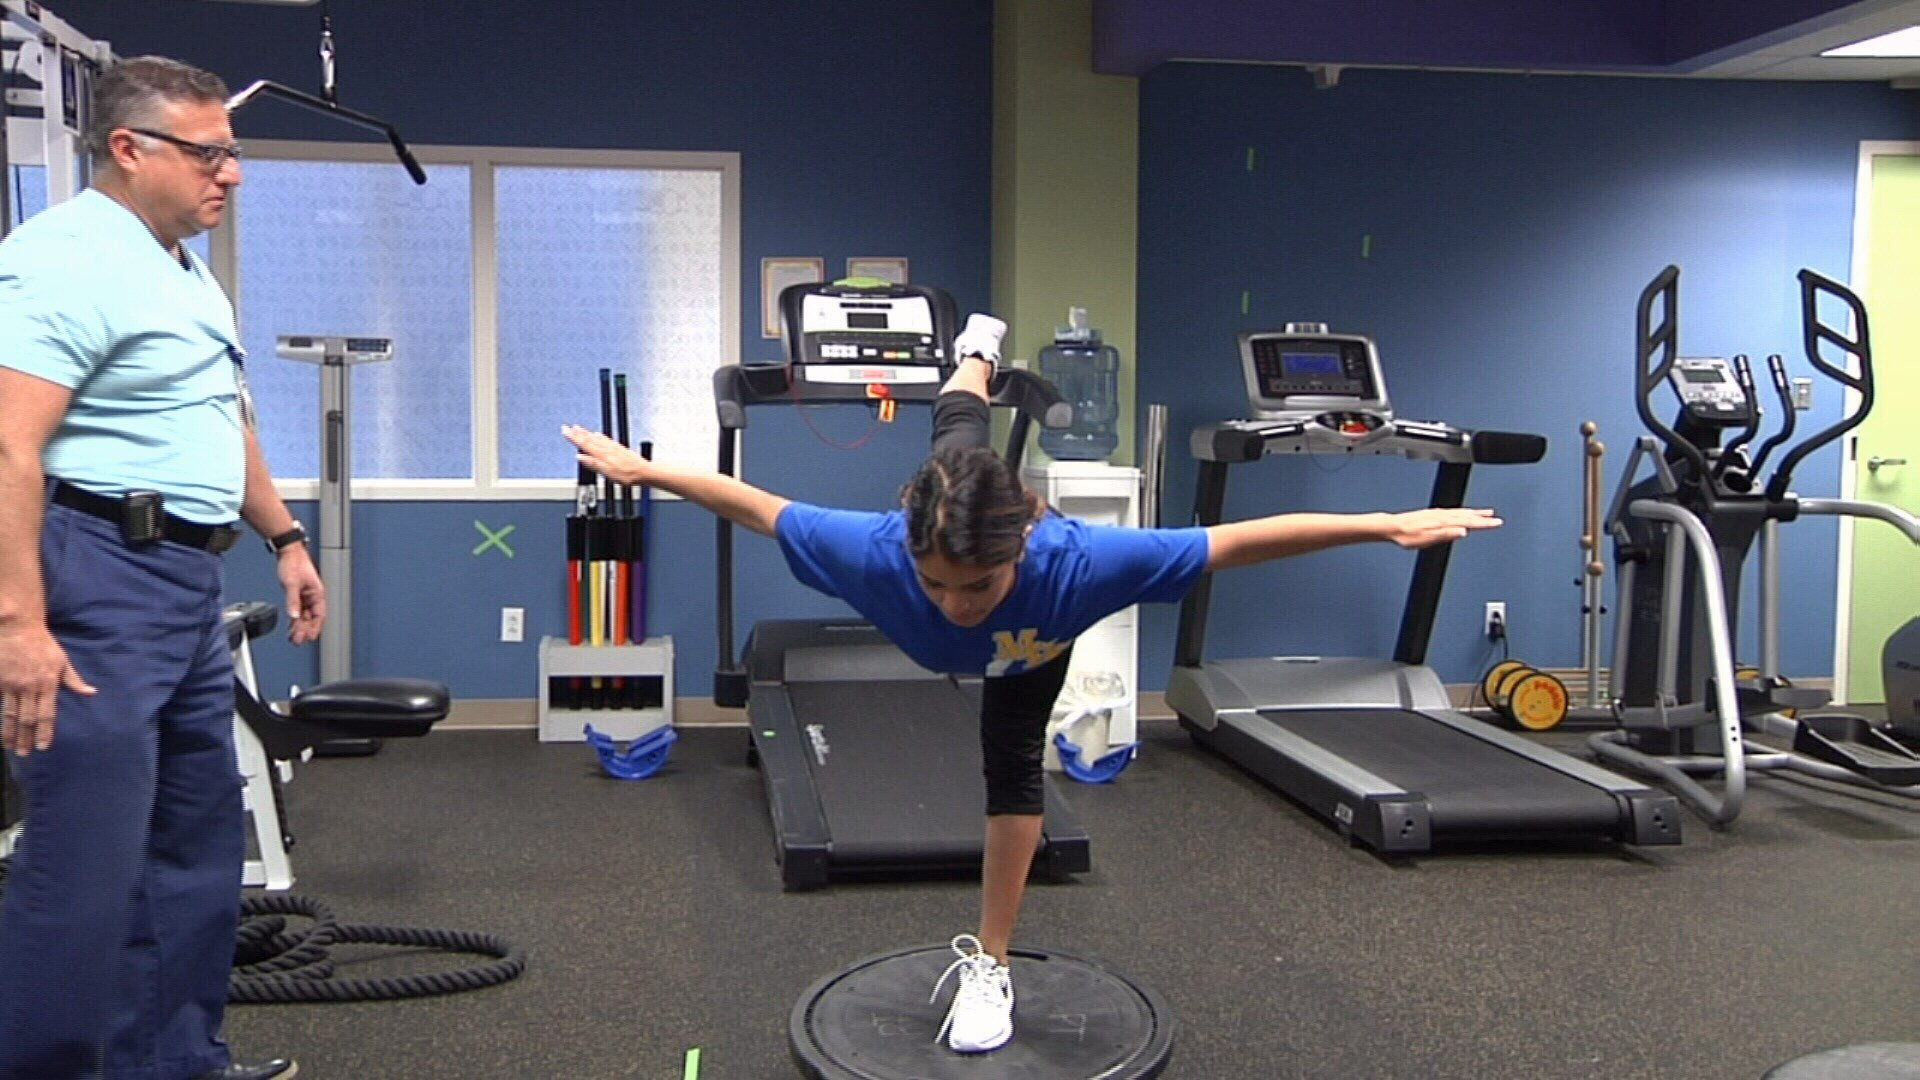 Driscoll Children's Hospital offers top-of-the-line sports rehab for athletes 0-21 years old.